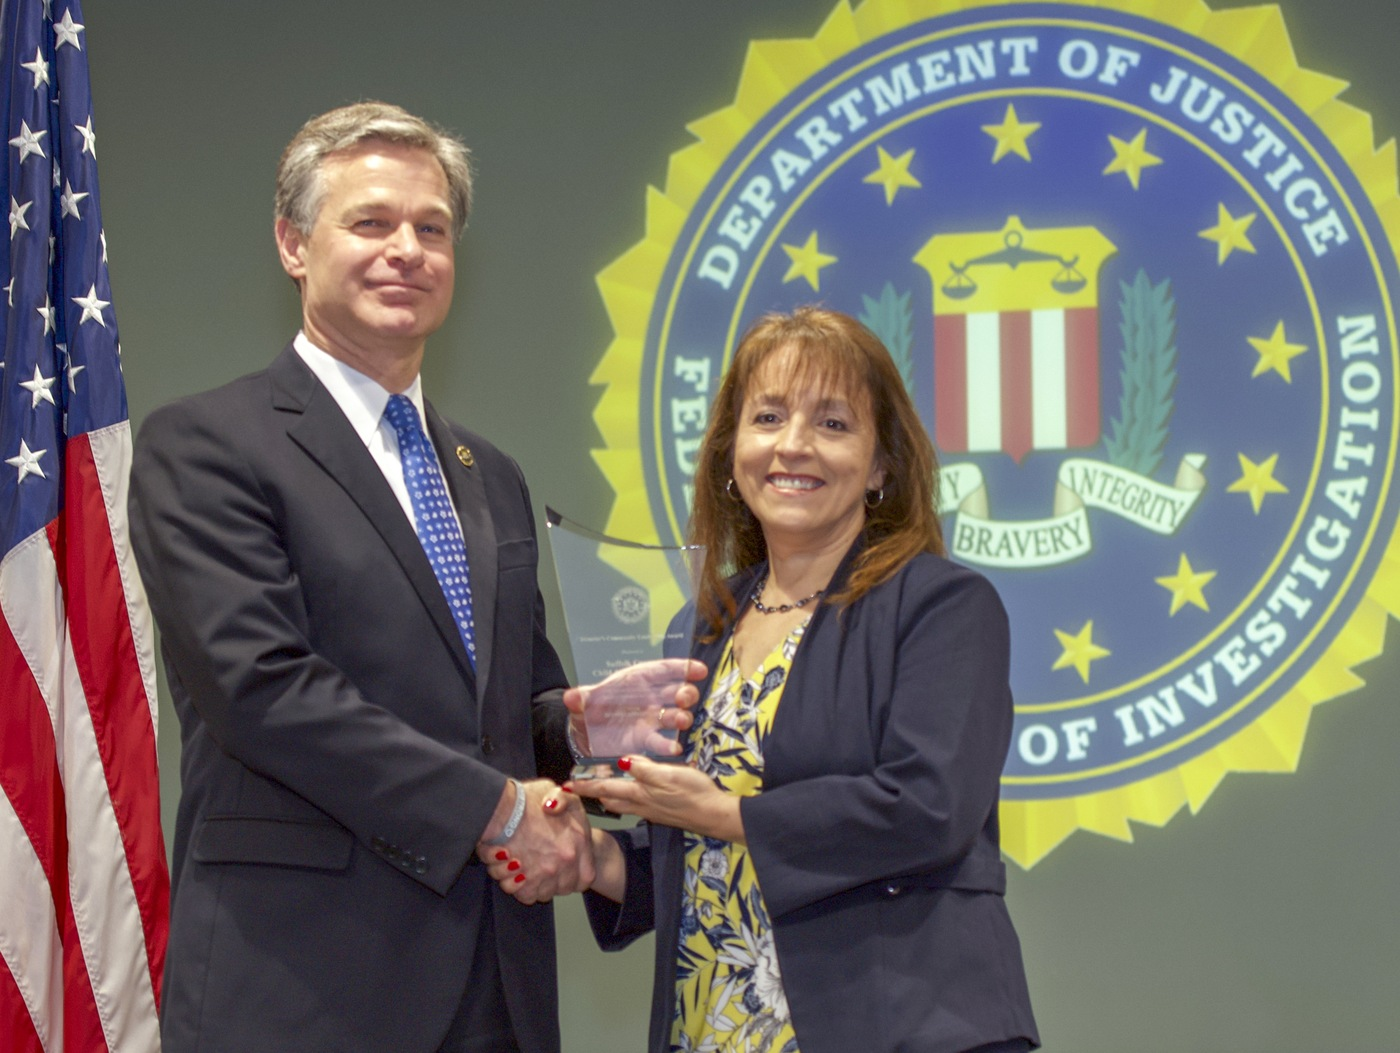 FBI Director Christopher Wray presents New York Division recipient the Suffolk County Child Advocacy Center (represented by Andrea Ramos-Topper) with the Director's Community Leadership Award (DCLA) at a ceremony at FBI Headquarters on May 3, 2019.